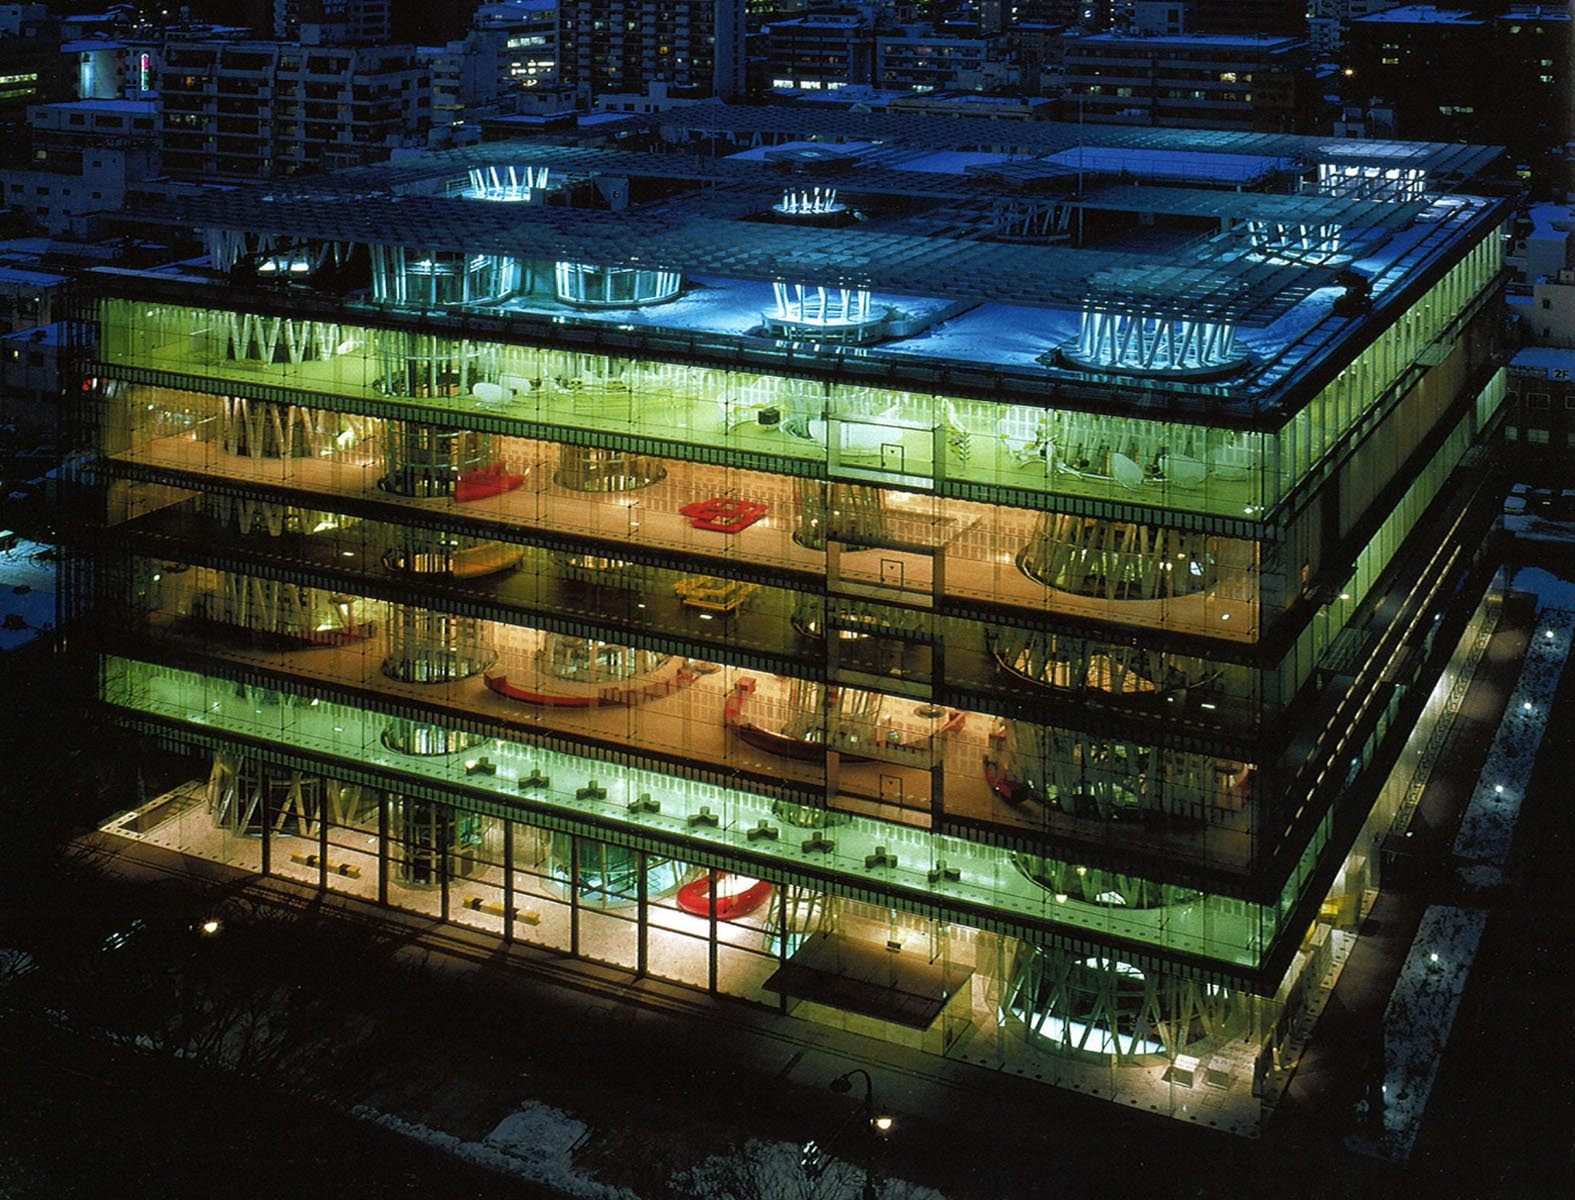 mediatheque sendai toyo ito Le laurat du prix Pritzker 2013 est larchitecte japonais Toyo Ito